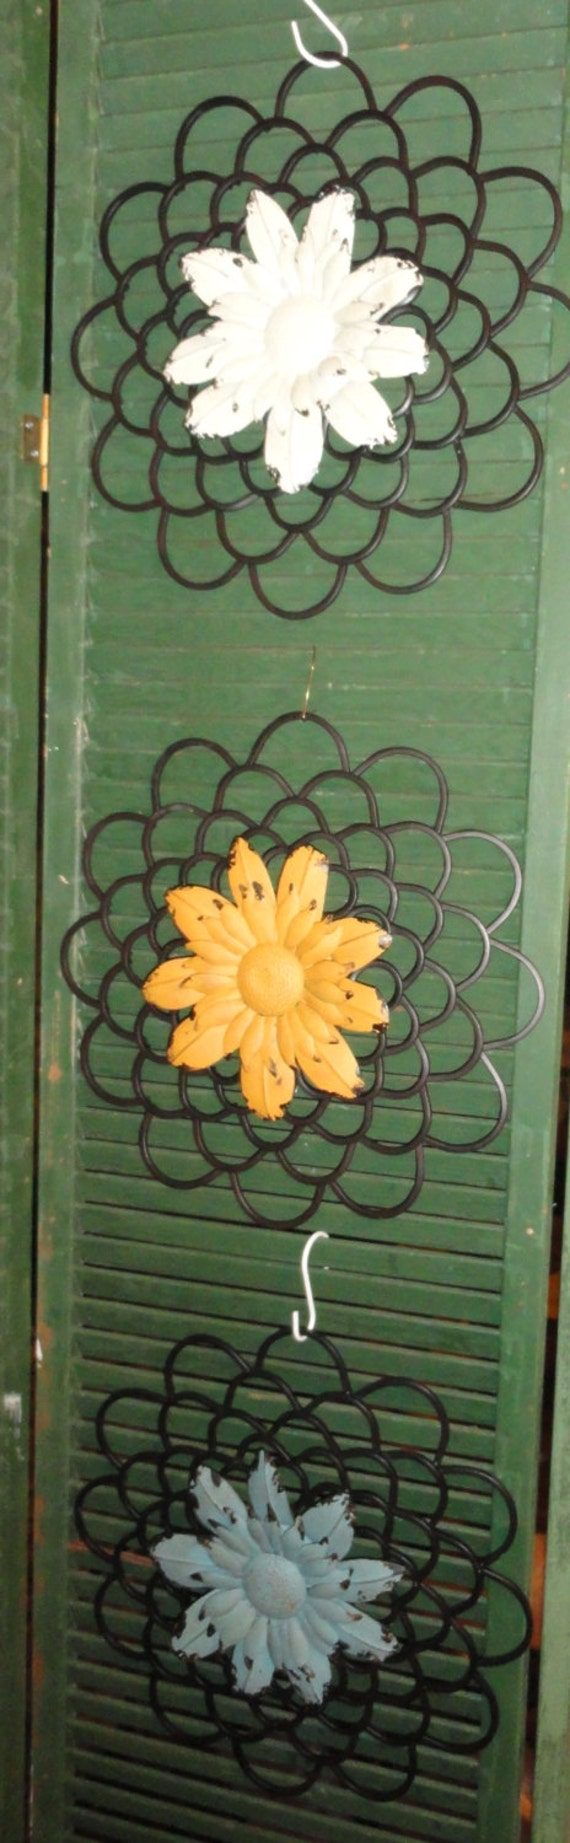 Garden Sunflower Wall Decor : Sunflower metal wall decor shabby and chic distressed